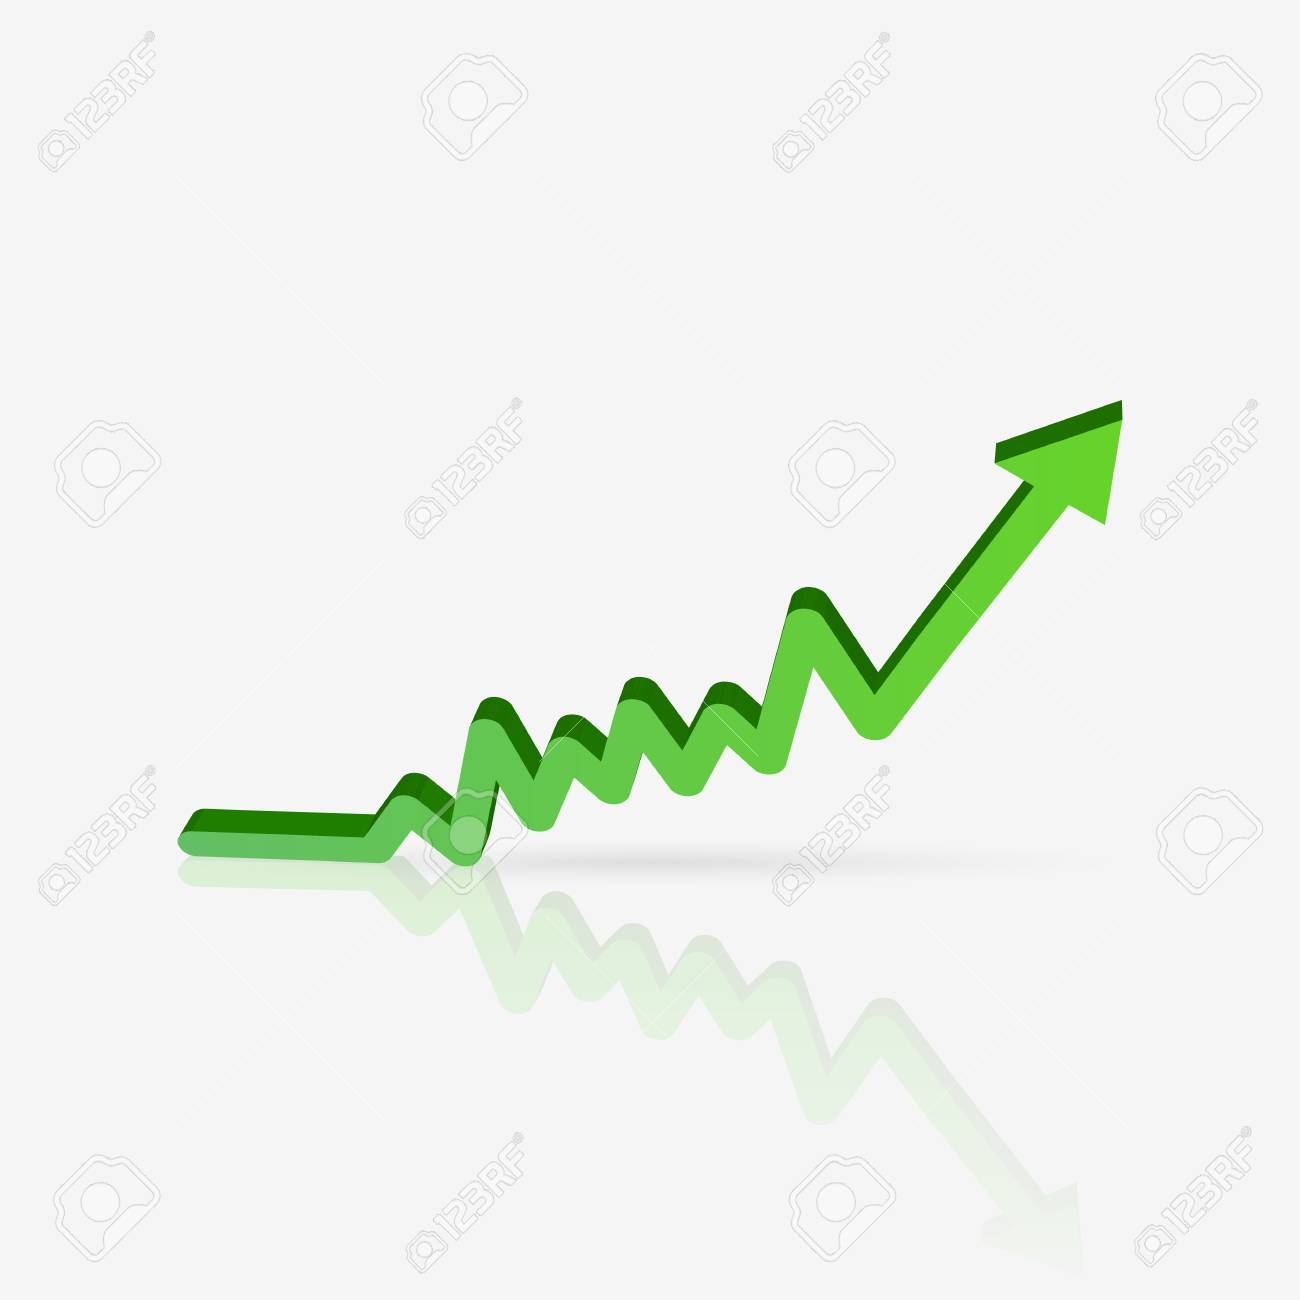 Illustration of a green sales chart isolated on a white background. - 97102072